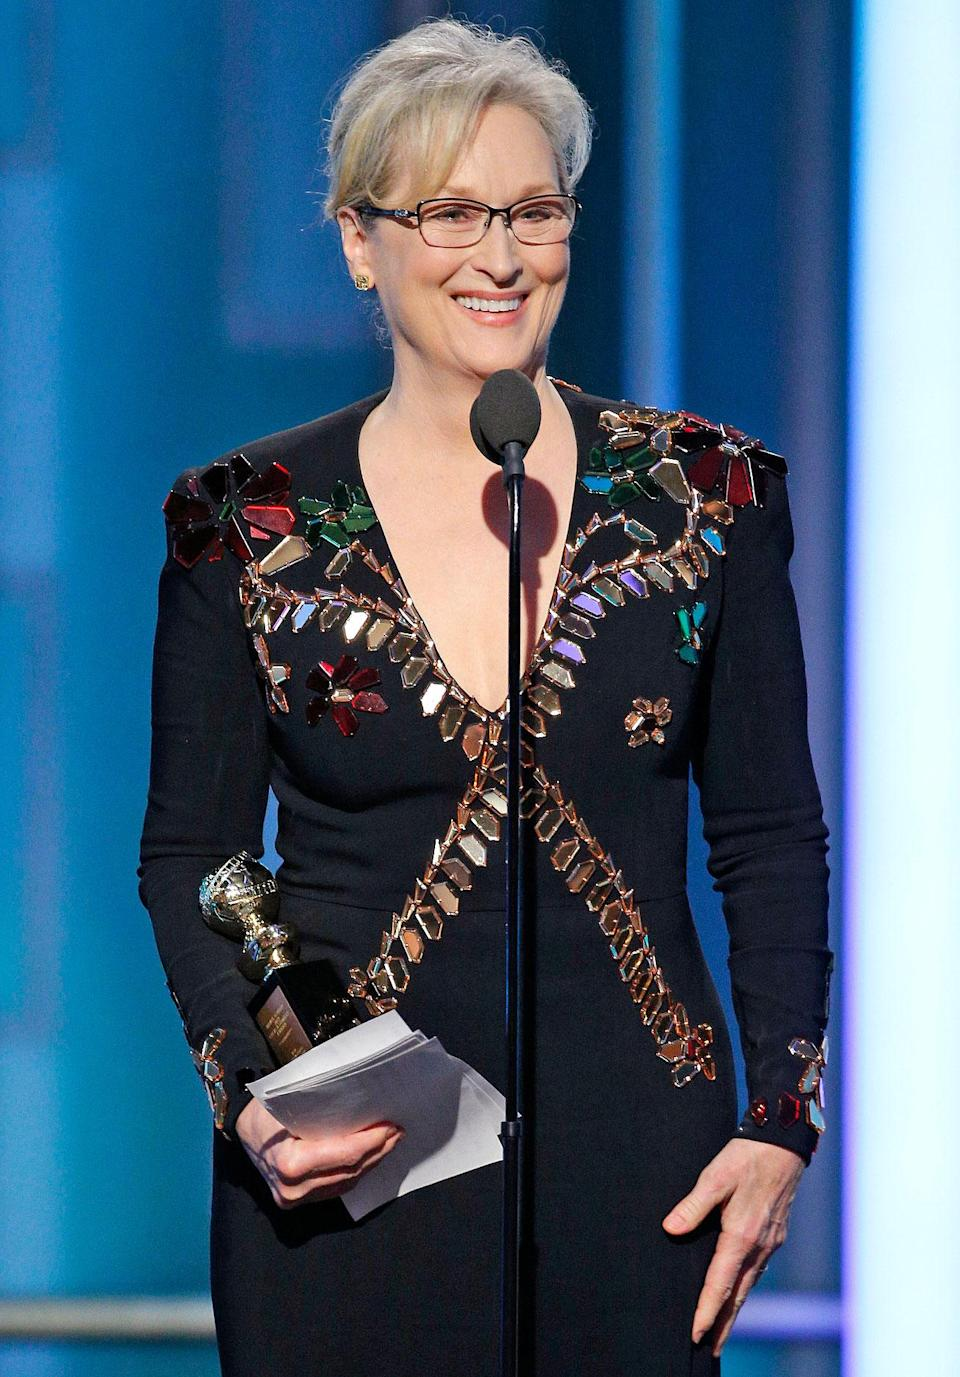 """<p>Meryl Streep won the Cecil B. DeMille Award in 2017 and used her time at the mic <a href=""""https://people.com/awards/golden-globes-2017-meryl-streep-wins-cecil-b-demille-award-take-aim-donald-trump/"""" rel=""""nofollow noopener"""" target=""""_blank"""" data-ylk=""""slk:to take aim at"""" class=""""link rapid-noclick-resp"""">to take aim at</a> then-President Donald Trump in a firey speech.</p>"""